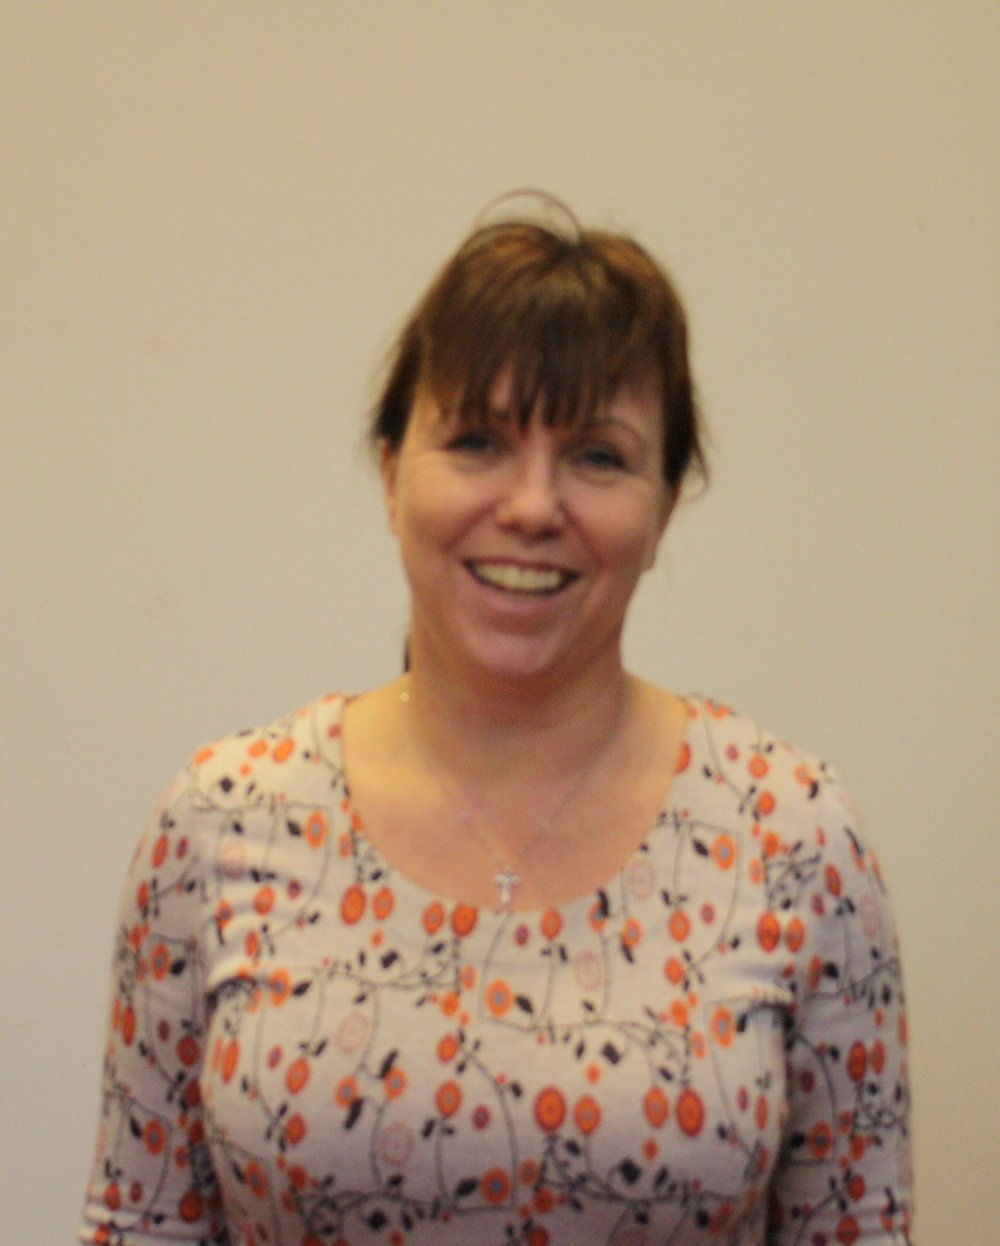 Beth Anderson - Curate   Beth is our curate. She is married to Mike and has three kids. They moved to St Helens in 2017 for her curacy.